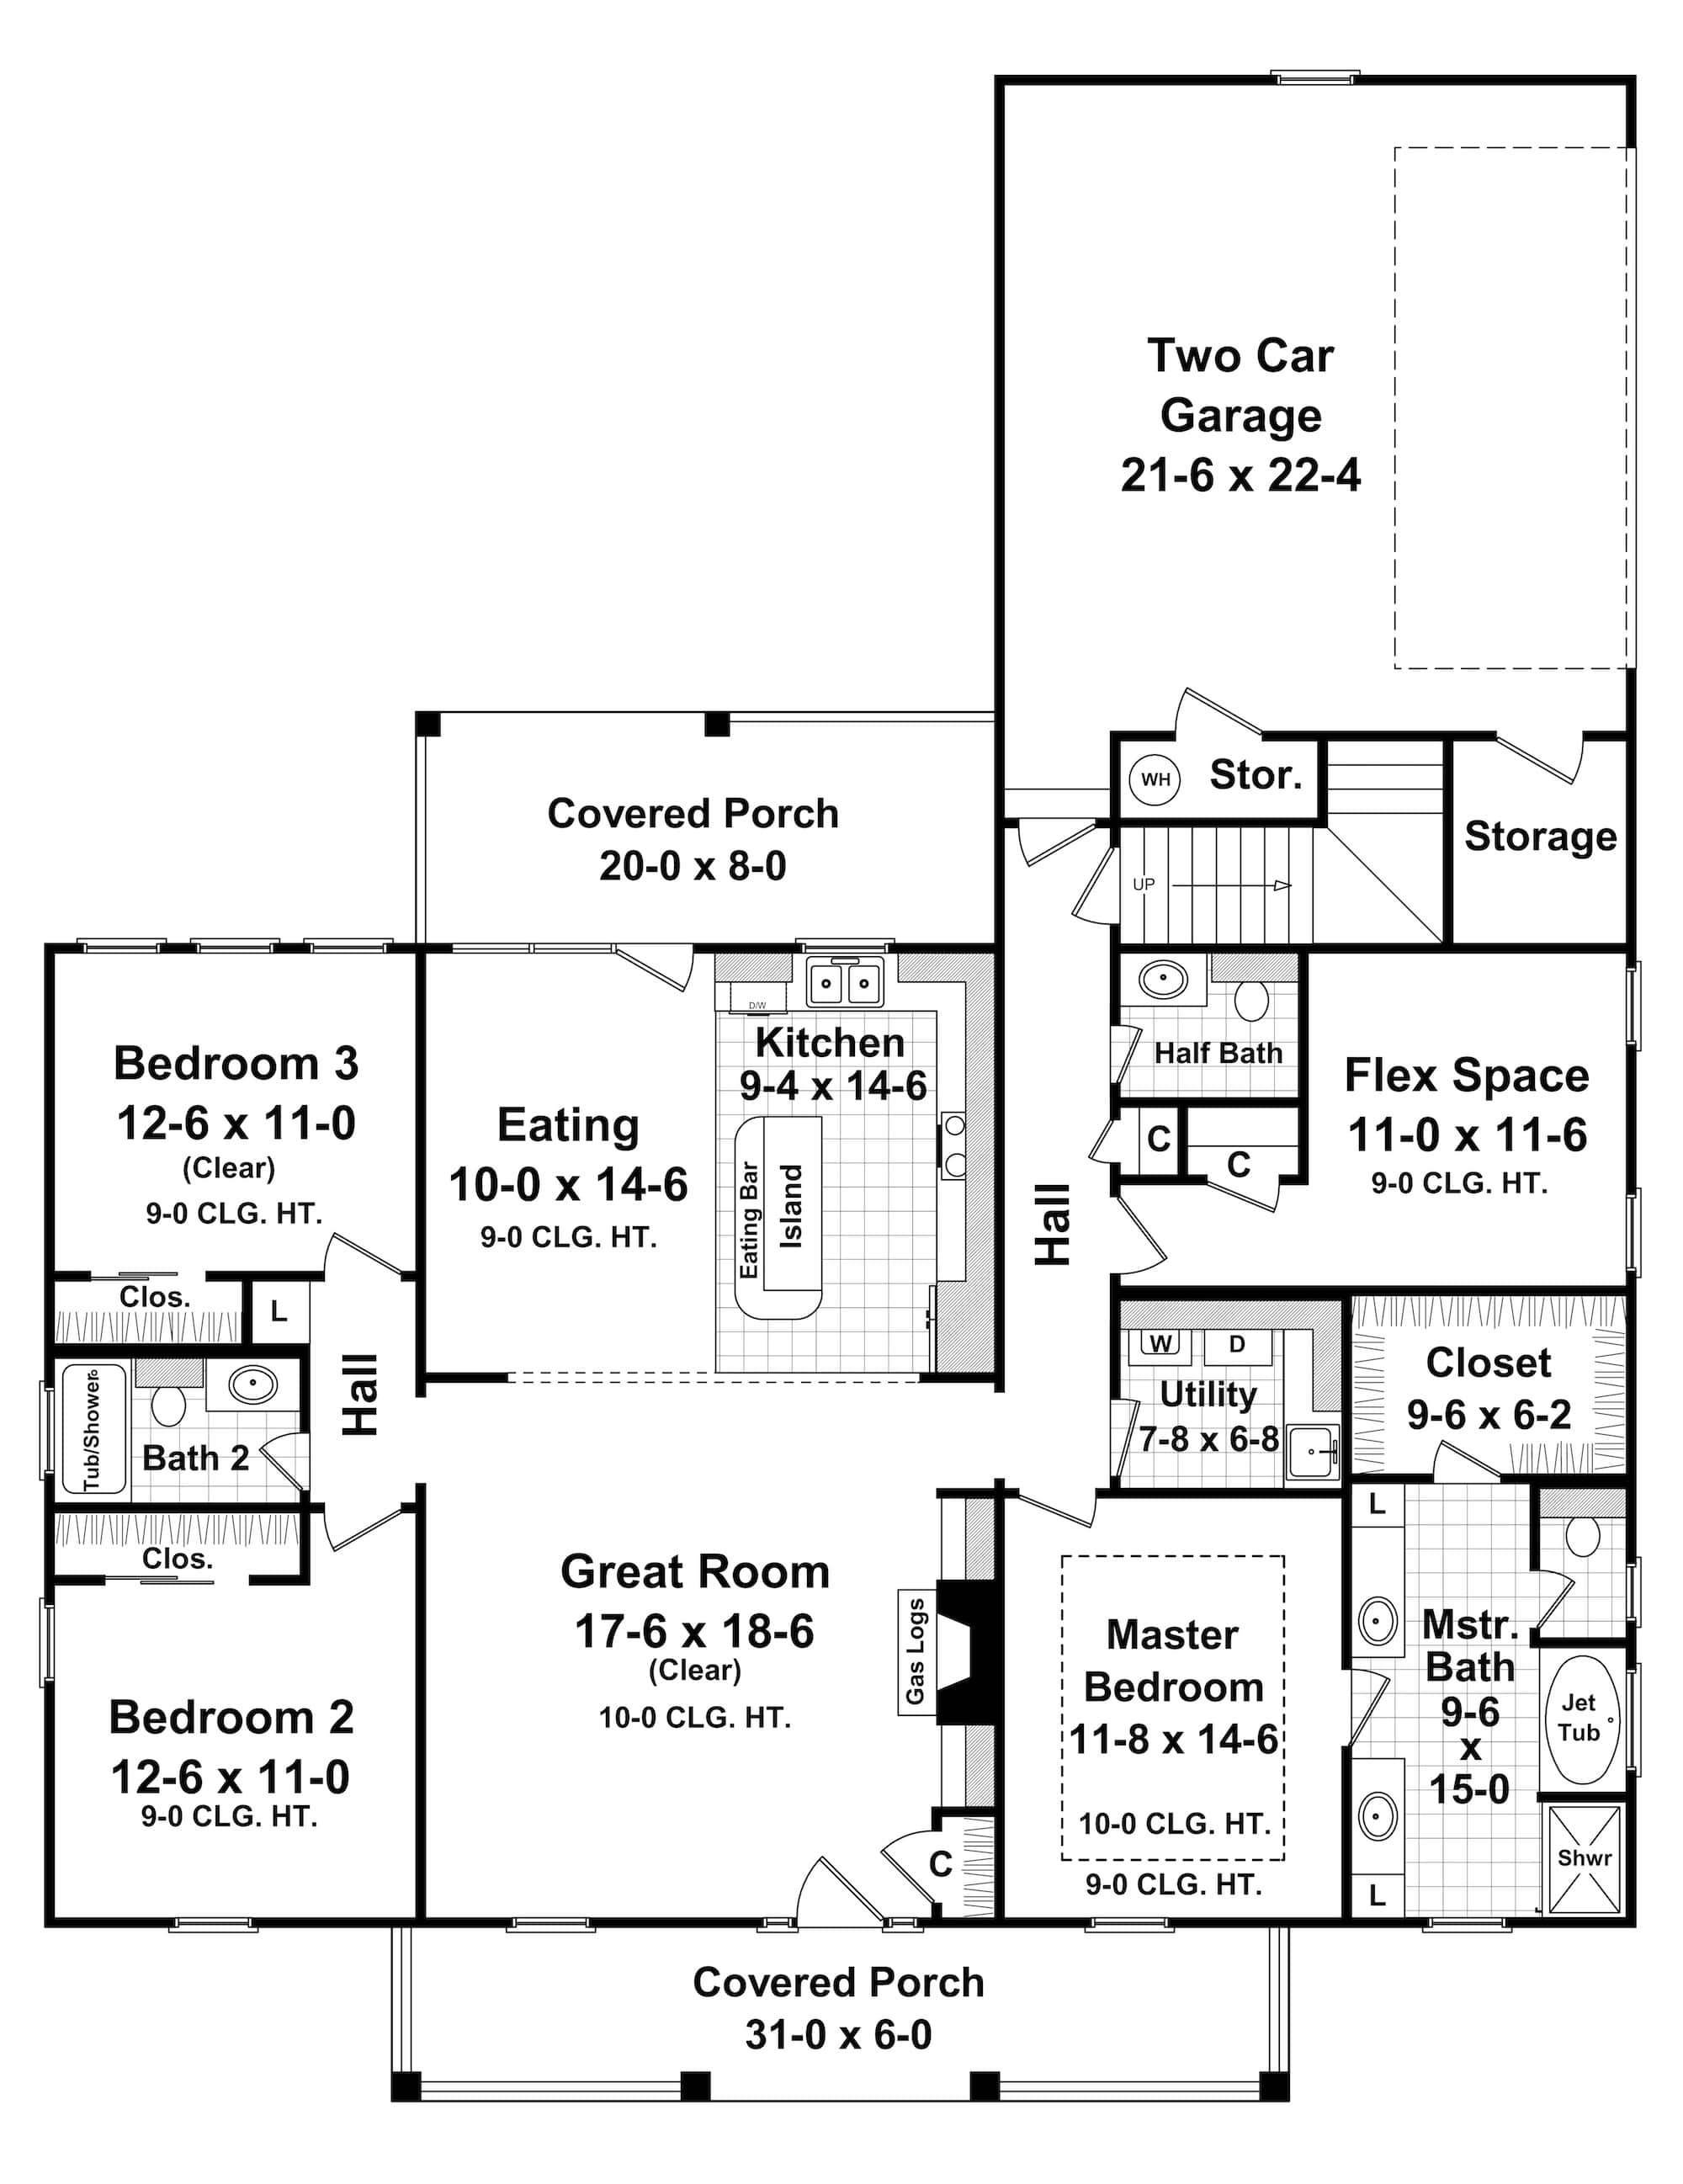 Plan1411061Image_13_2_2018_1418_56 Ranch Home Floor Plans Square Feet on 1800 mansions floor plans, 2 car garage floor plans, bedroom floor plans, two bath floor plans, 1 car garage floor plans,